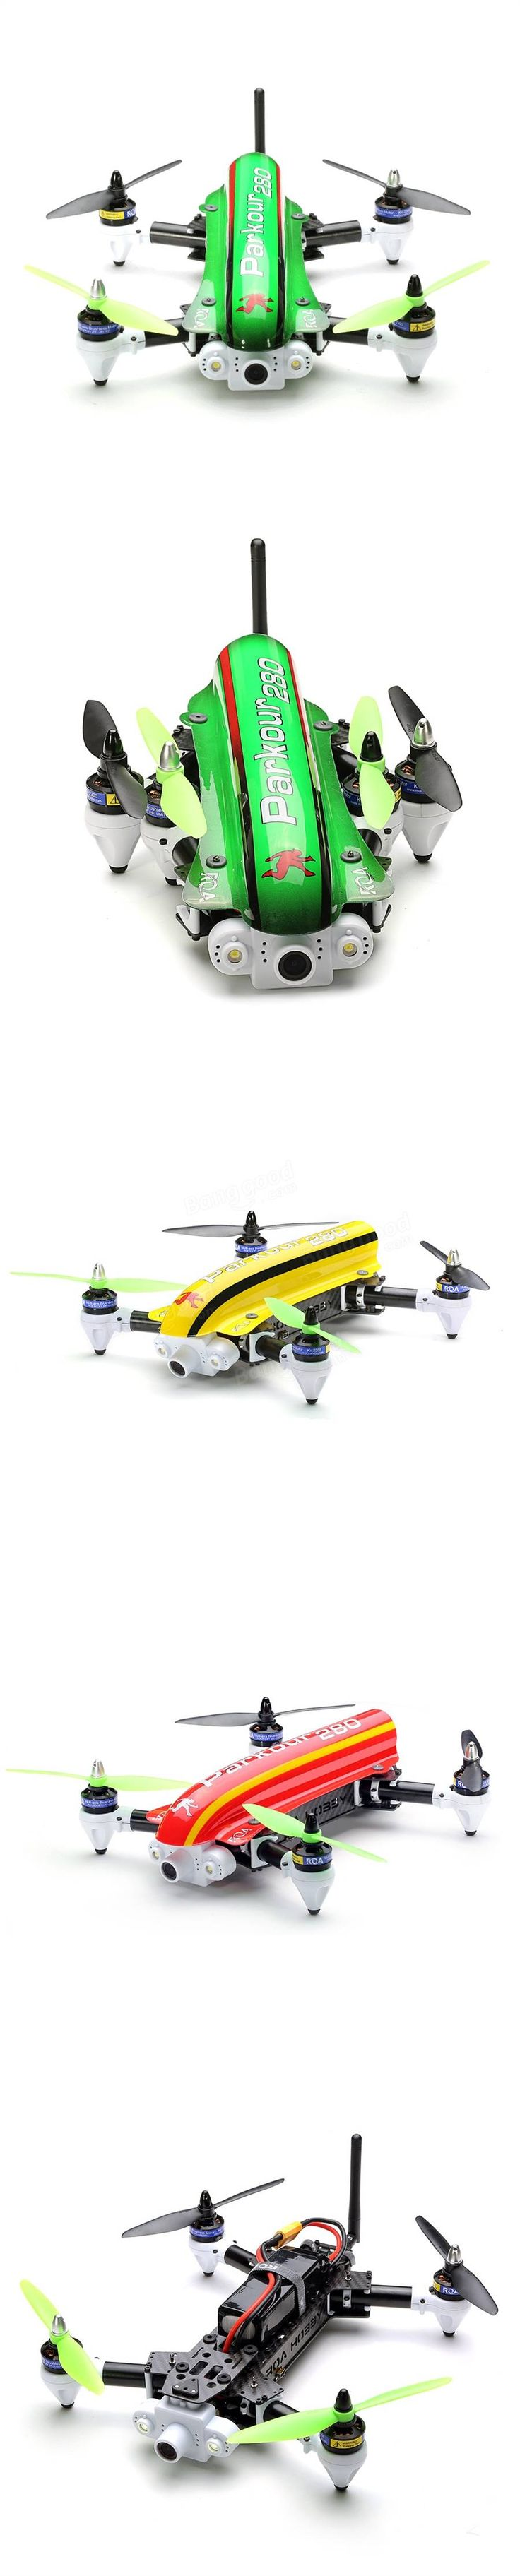 1000 images about multirotor fpv technology roa parkour 280 racer ccd sony 700tvl camera cc3d 5 8g 200mw 32ch fpv image